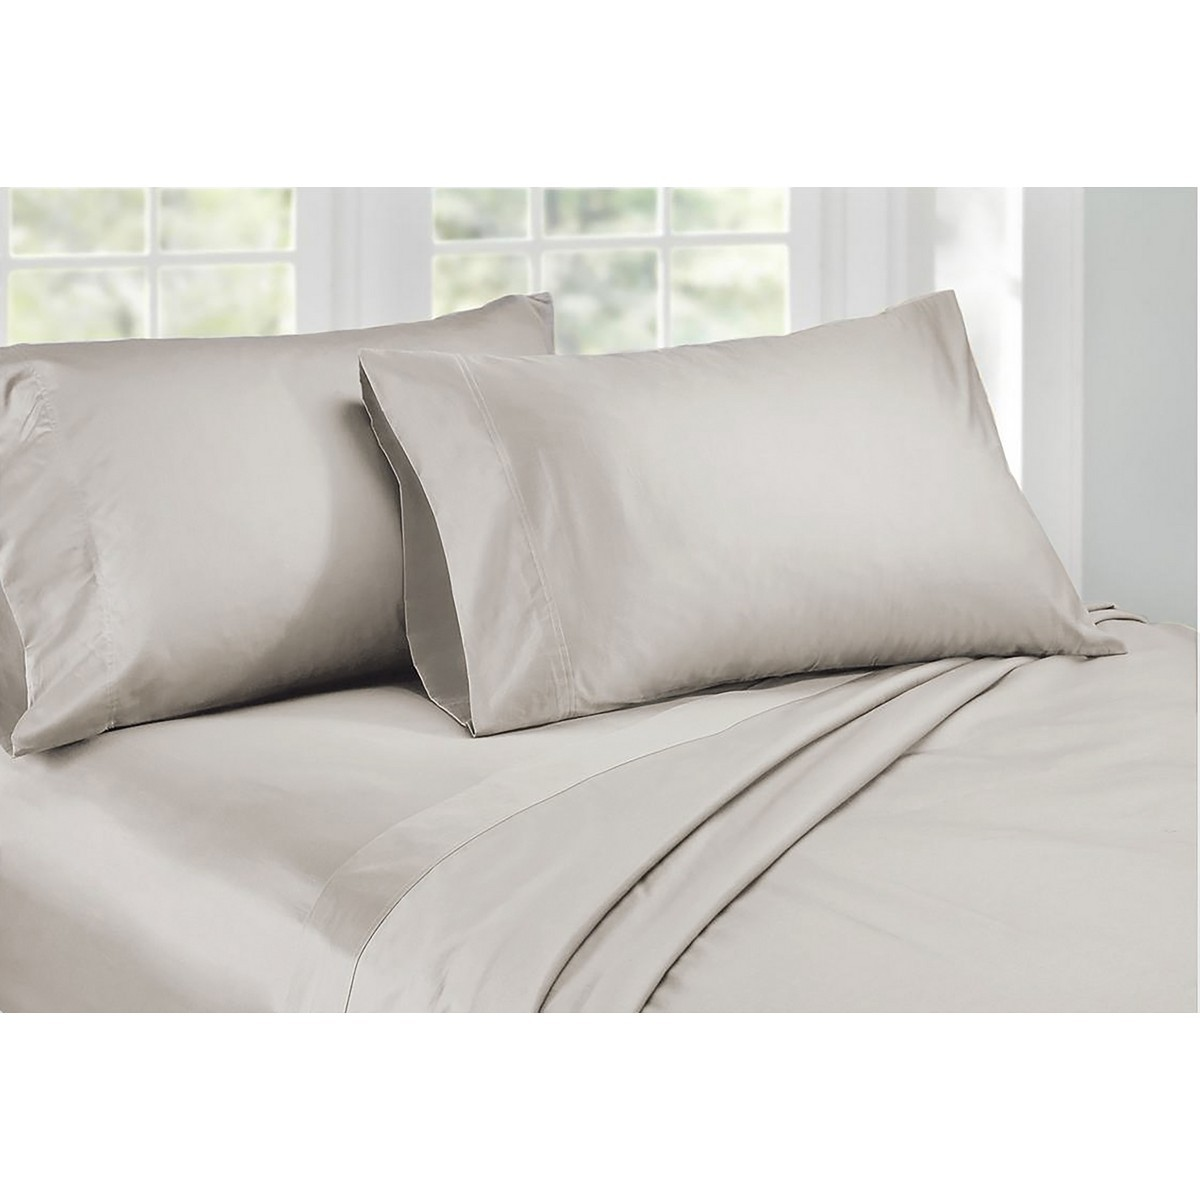 Ardor 1000TC Cotton Rich Sheet Set, King, Silver